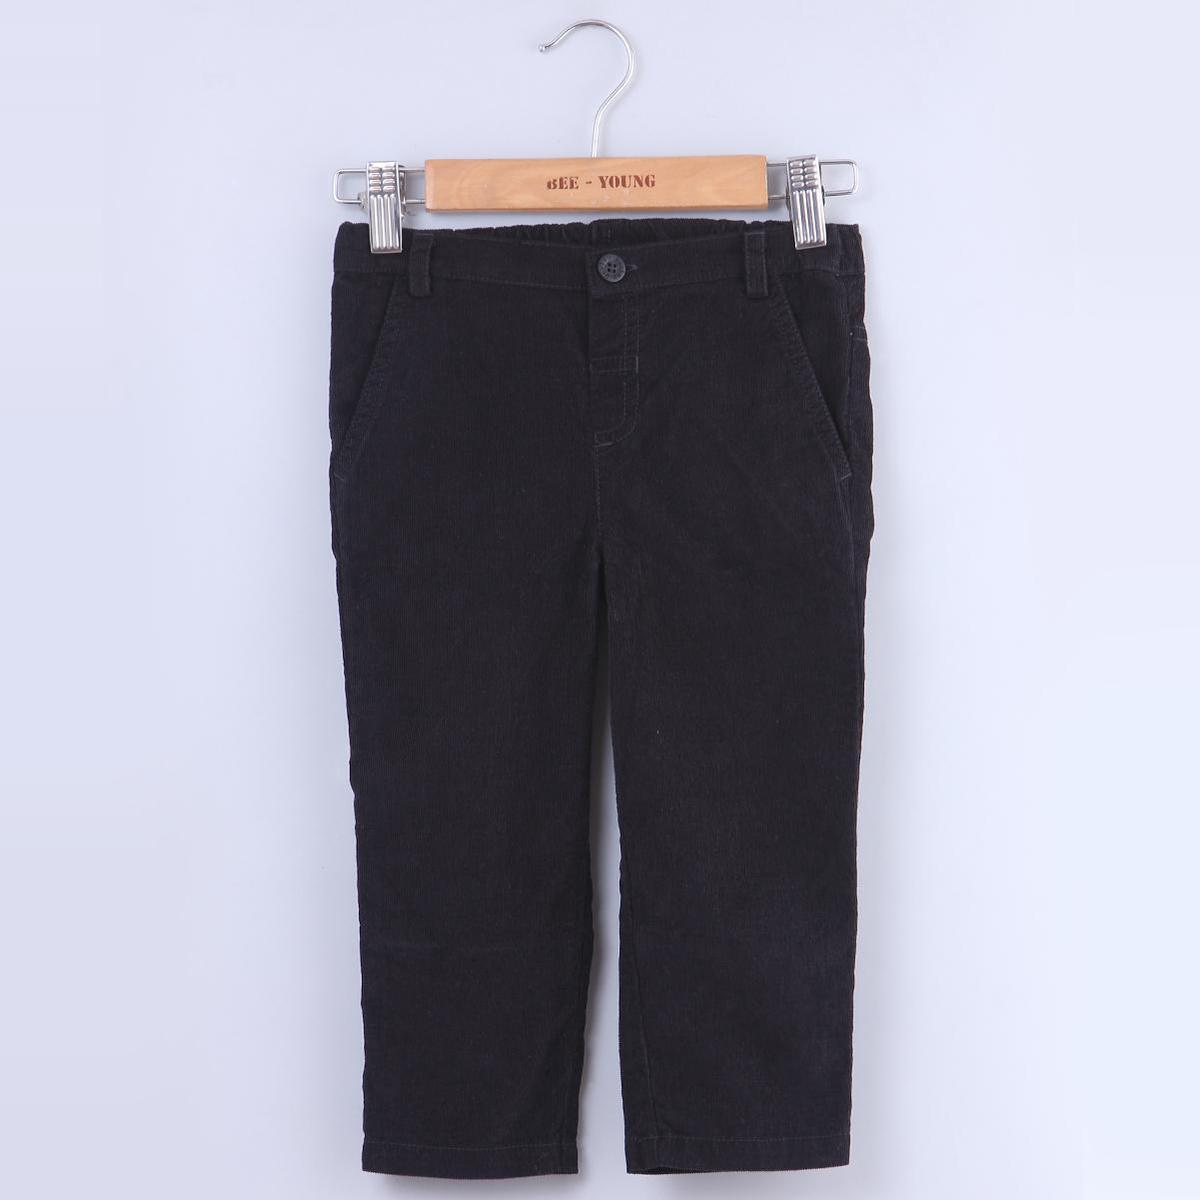 Beebay - Black Colored Jet Black Corduroy Cotton Stretchable Trousers For Kids Boys